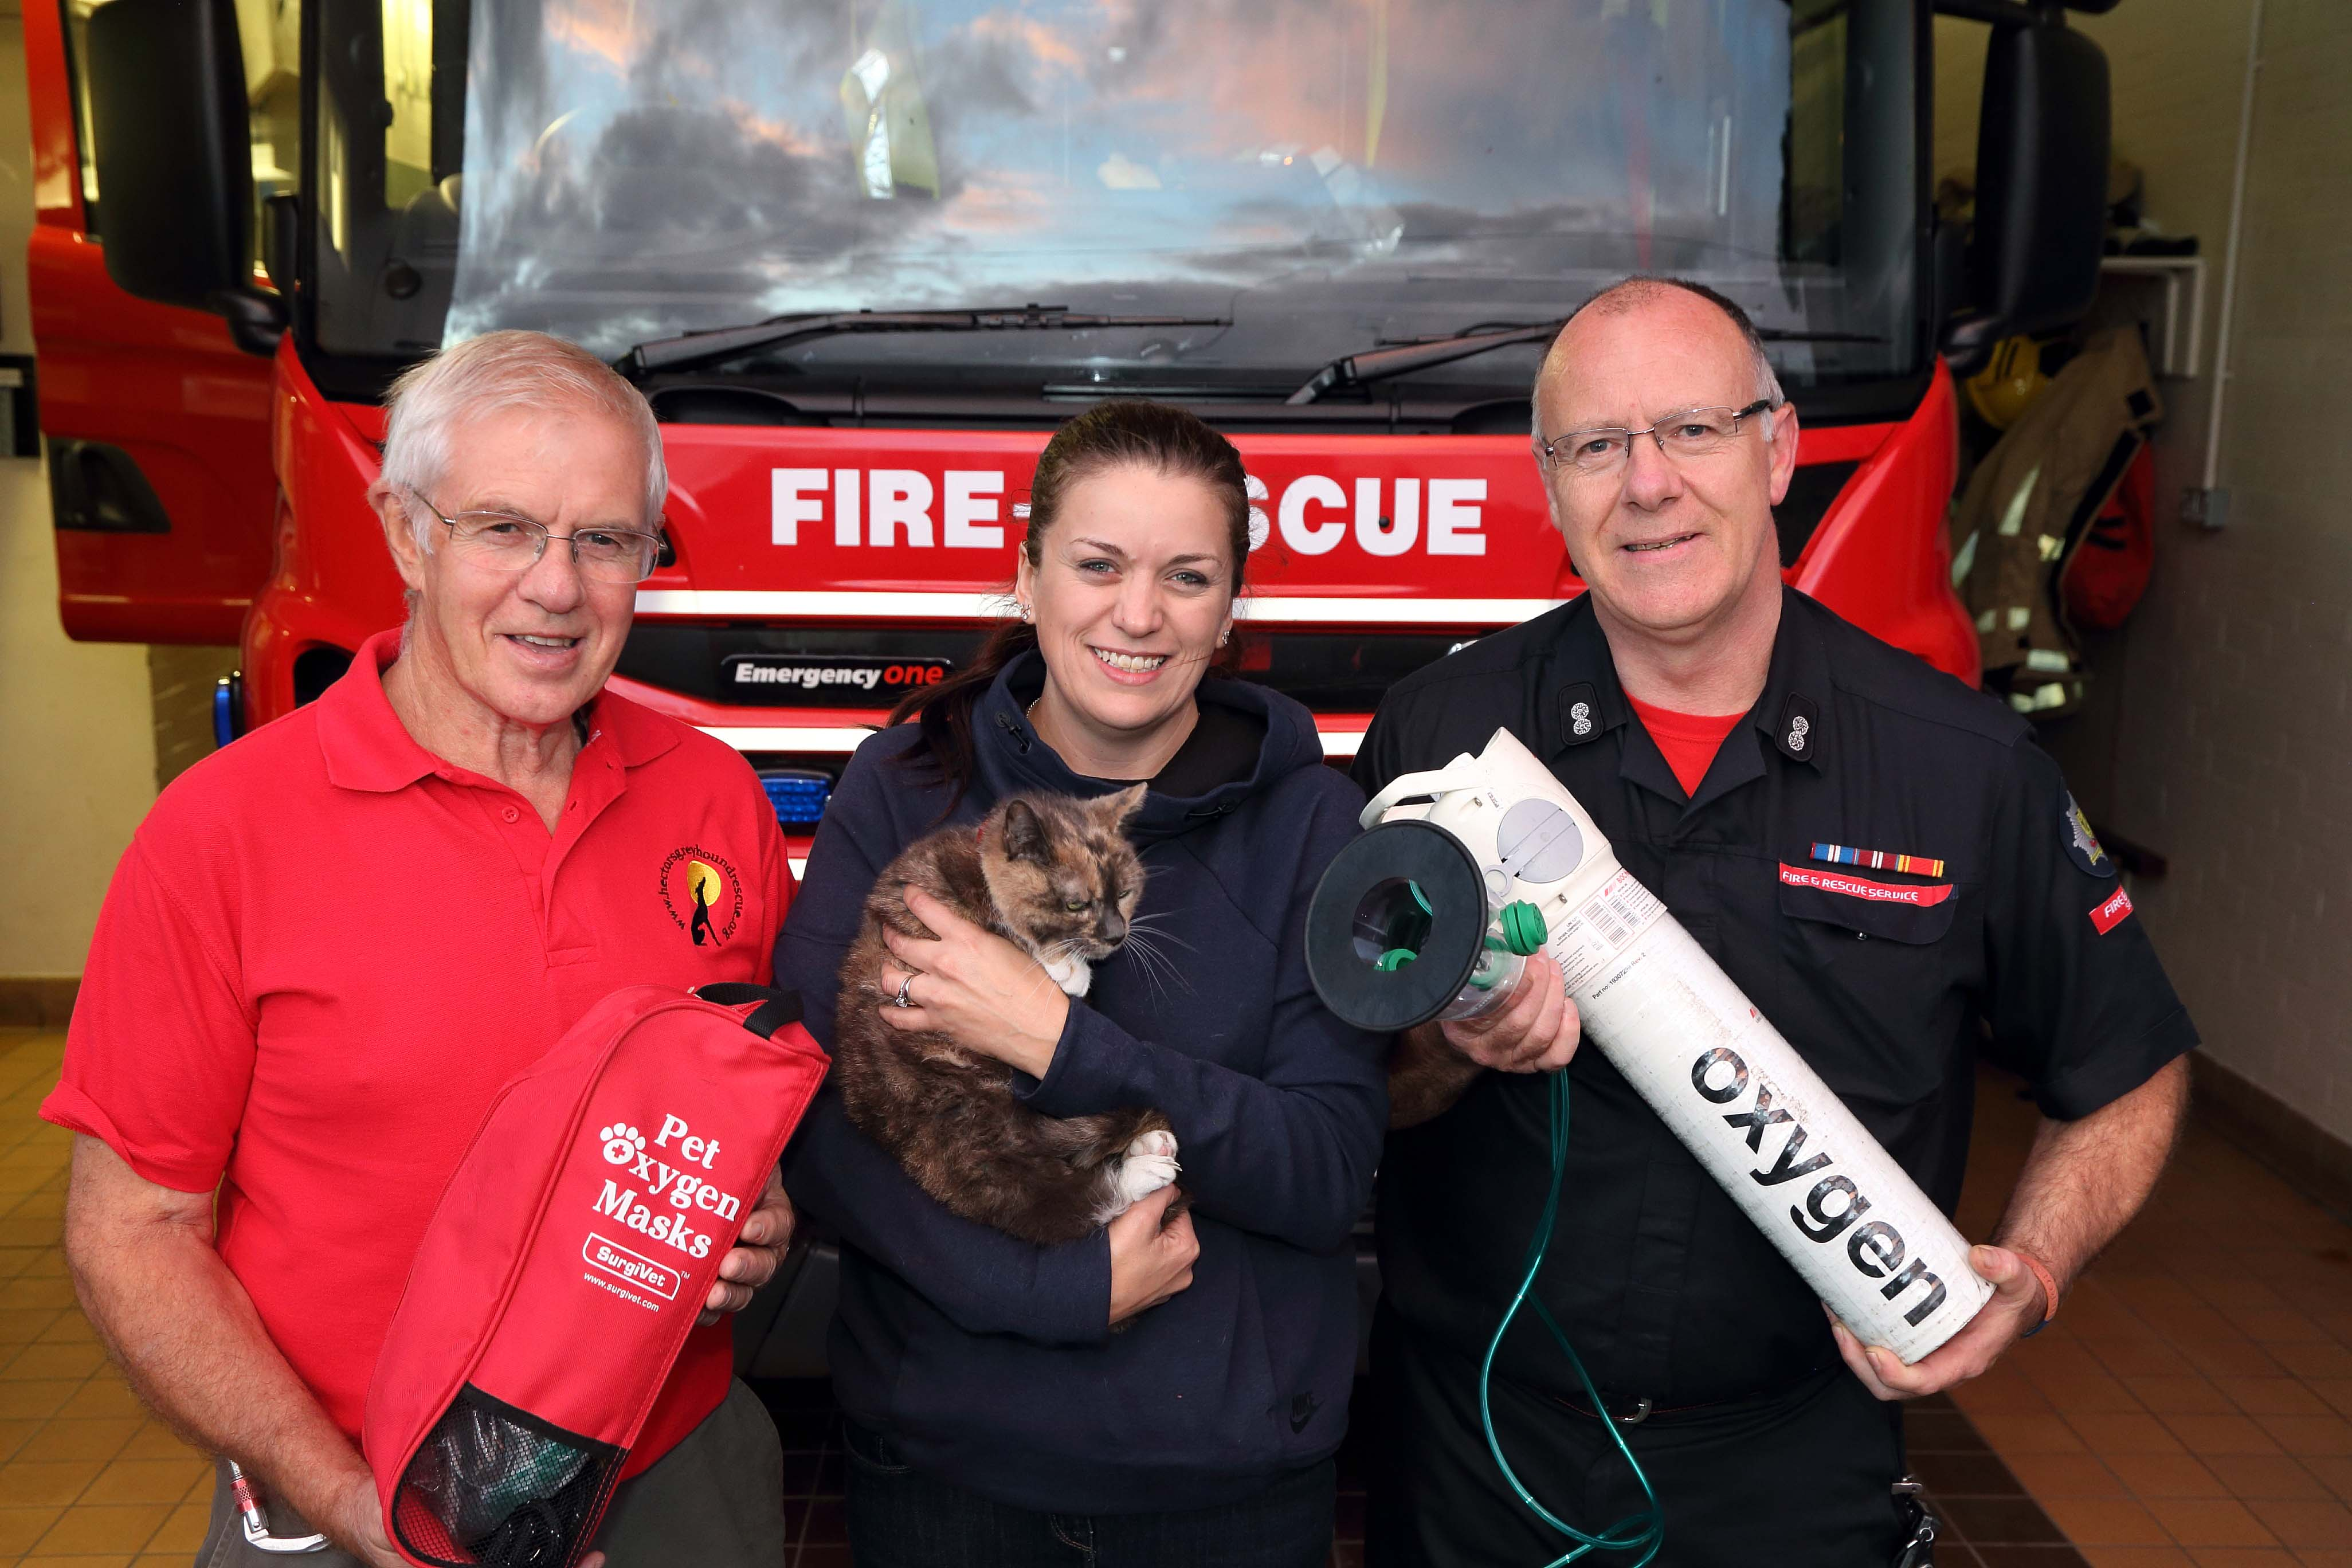 Fundraiser Fred Brown, pet owner Shelley Hall and Watch Manager Steve Moorhouse Harriet the cat at Ellesmere Fire Station. Harriet is the first animal in Shropshire to be revived with the new pet oxygen mask after a house fire